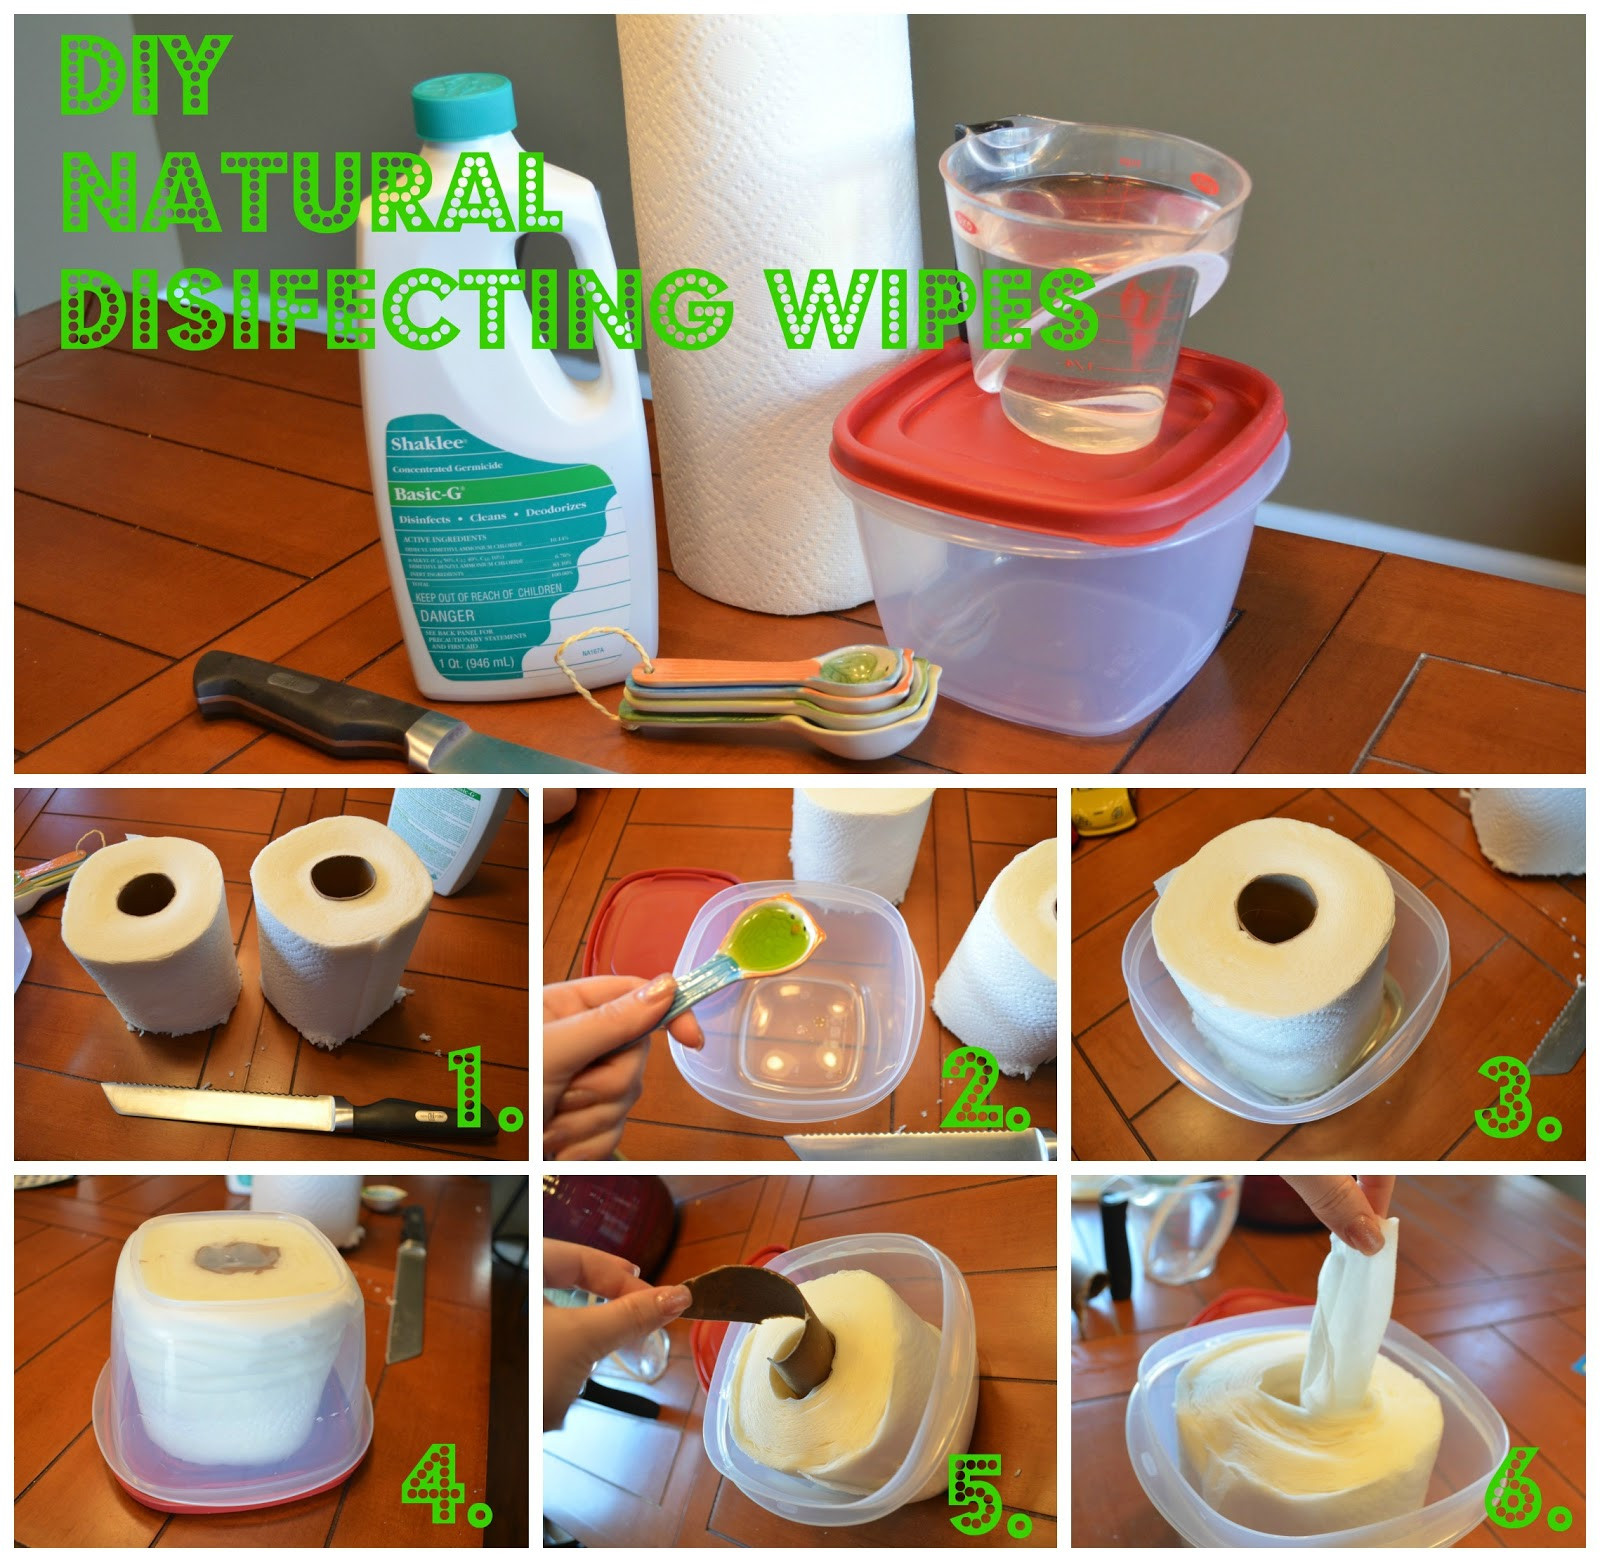 Best ideas about DIY Cleaning Wipes . Save or Pin Pampered Daughter Thrifty Wife DIY Natural Disinfecting Wipes Now.